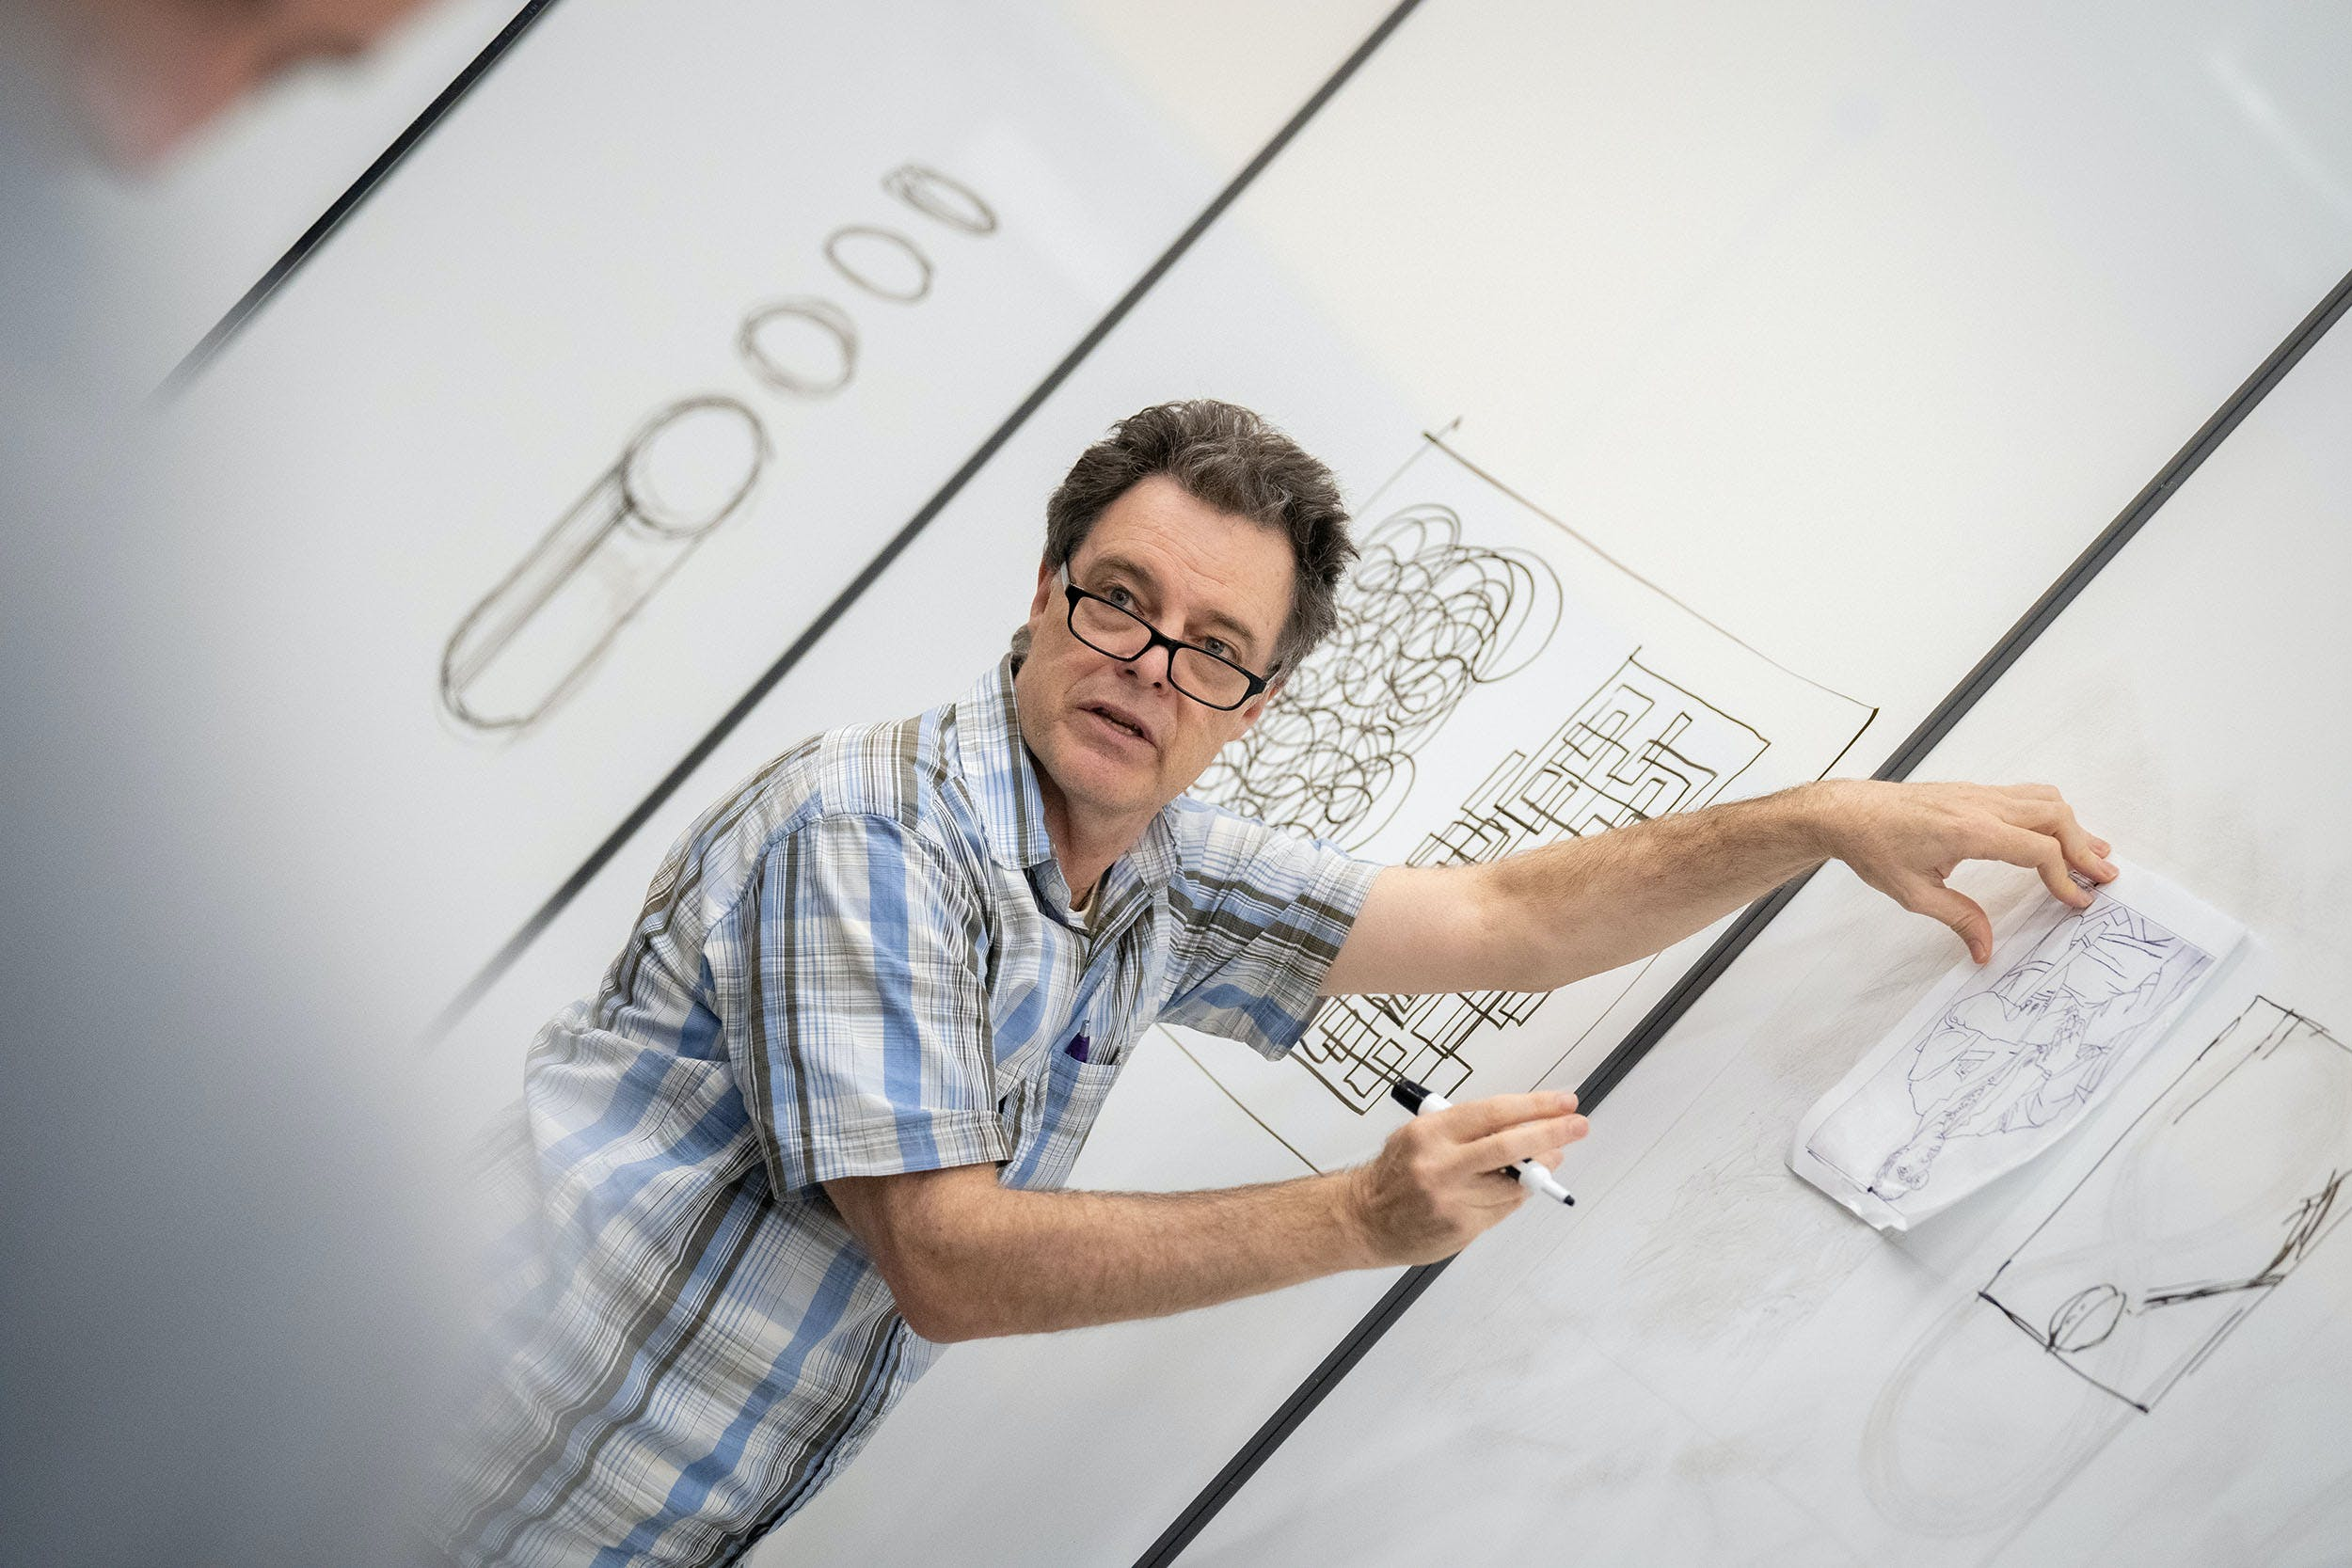 A faculty member is drawing for students